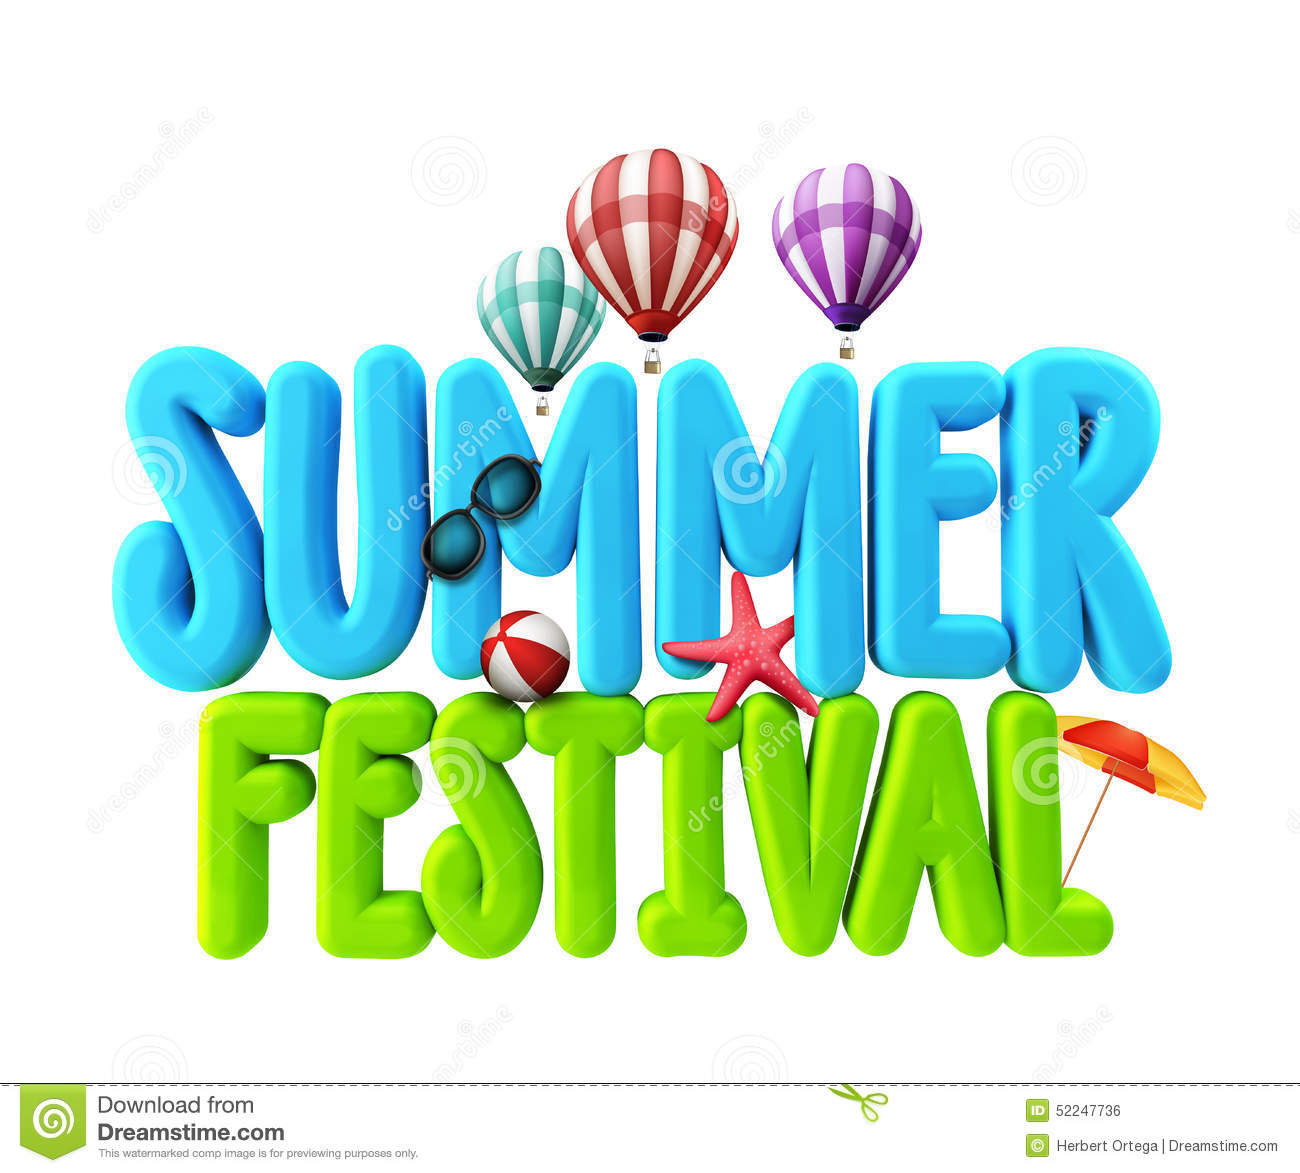 Festivals and Events Clip Art.